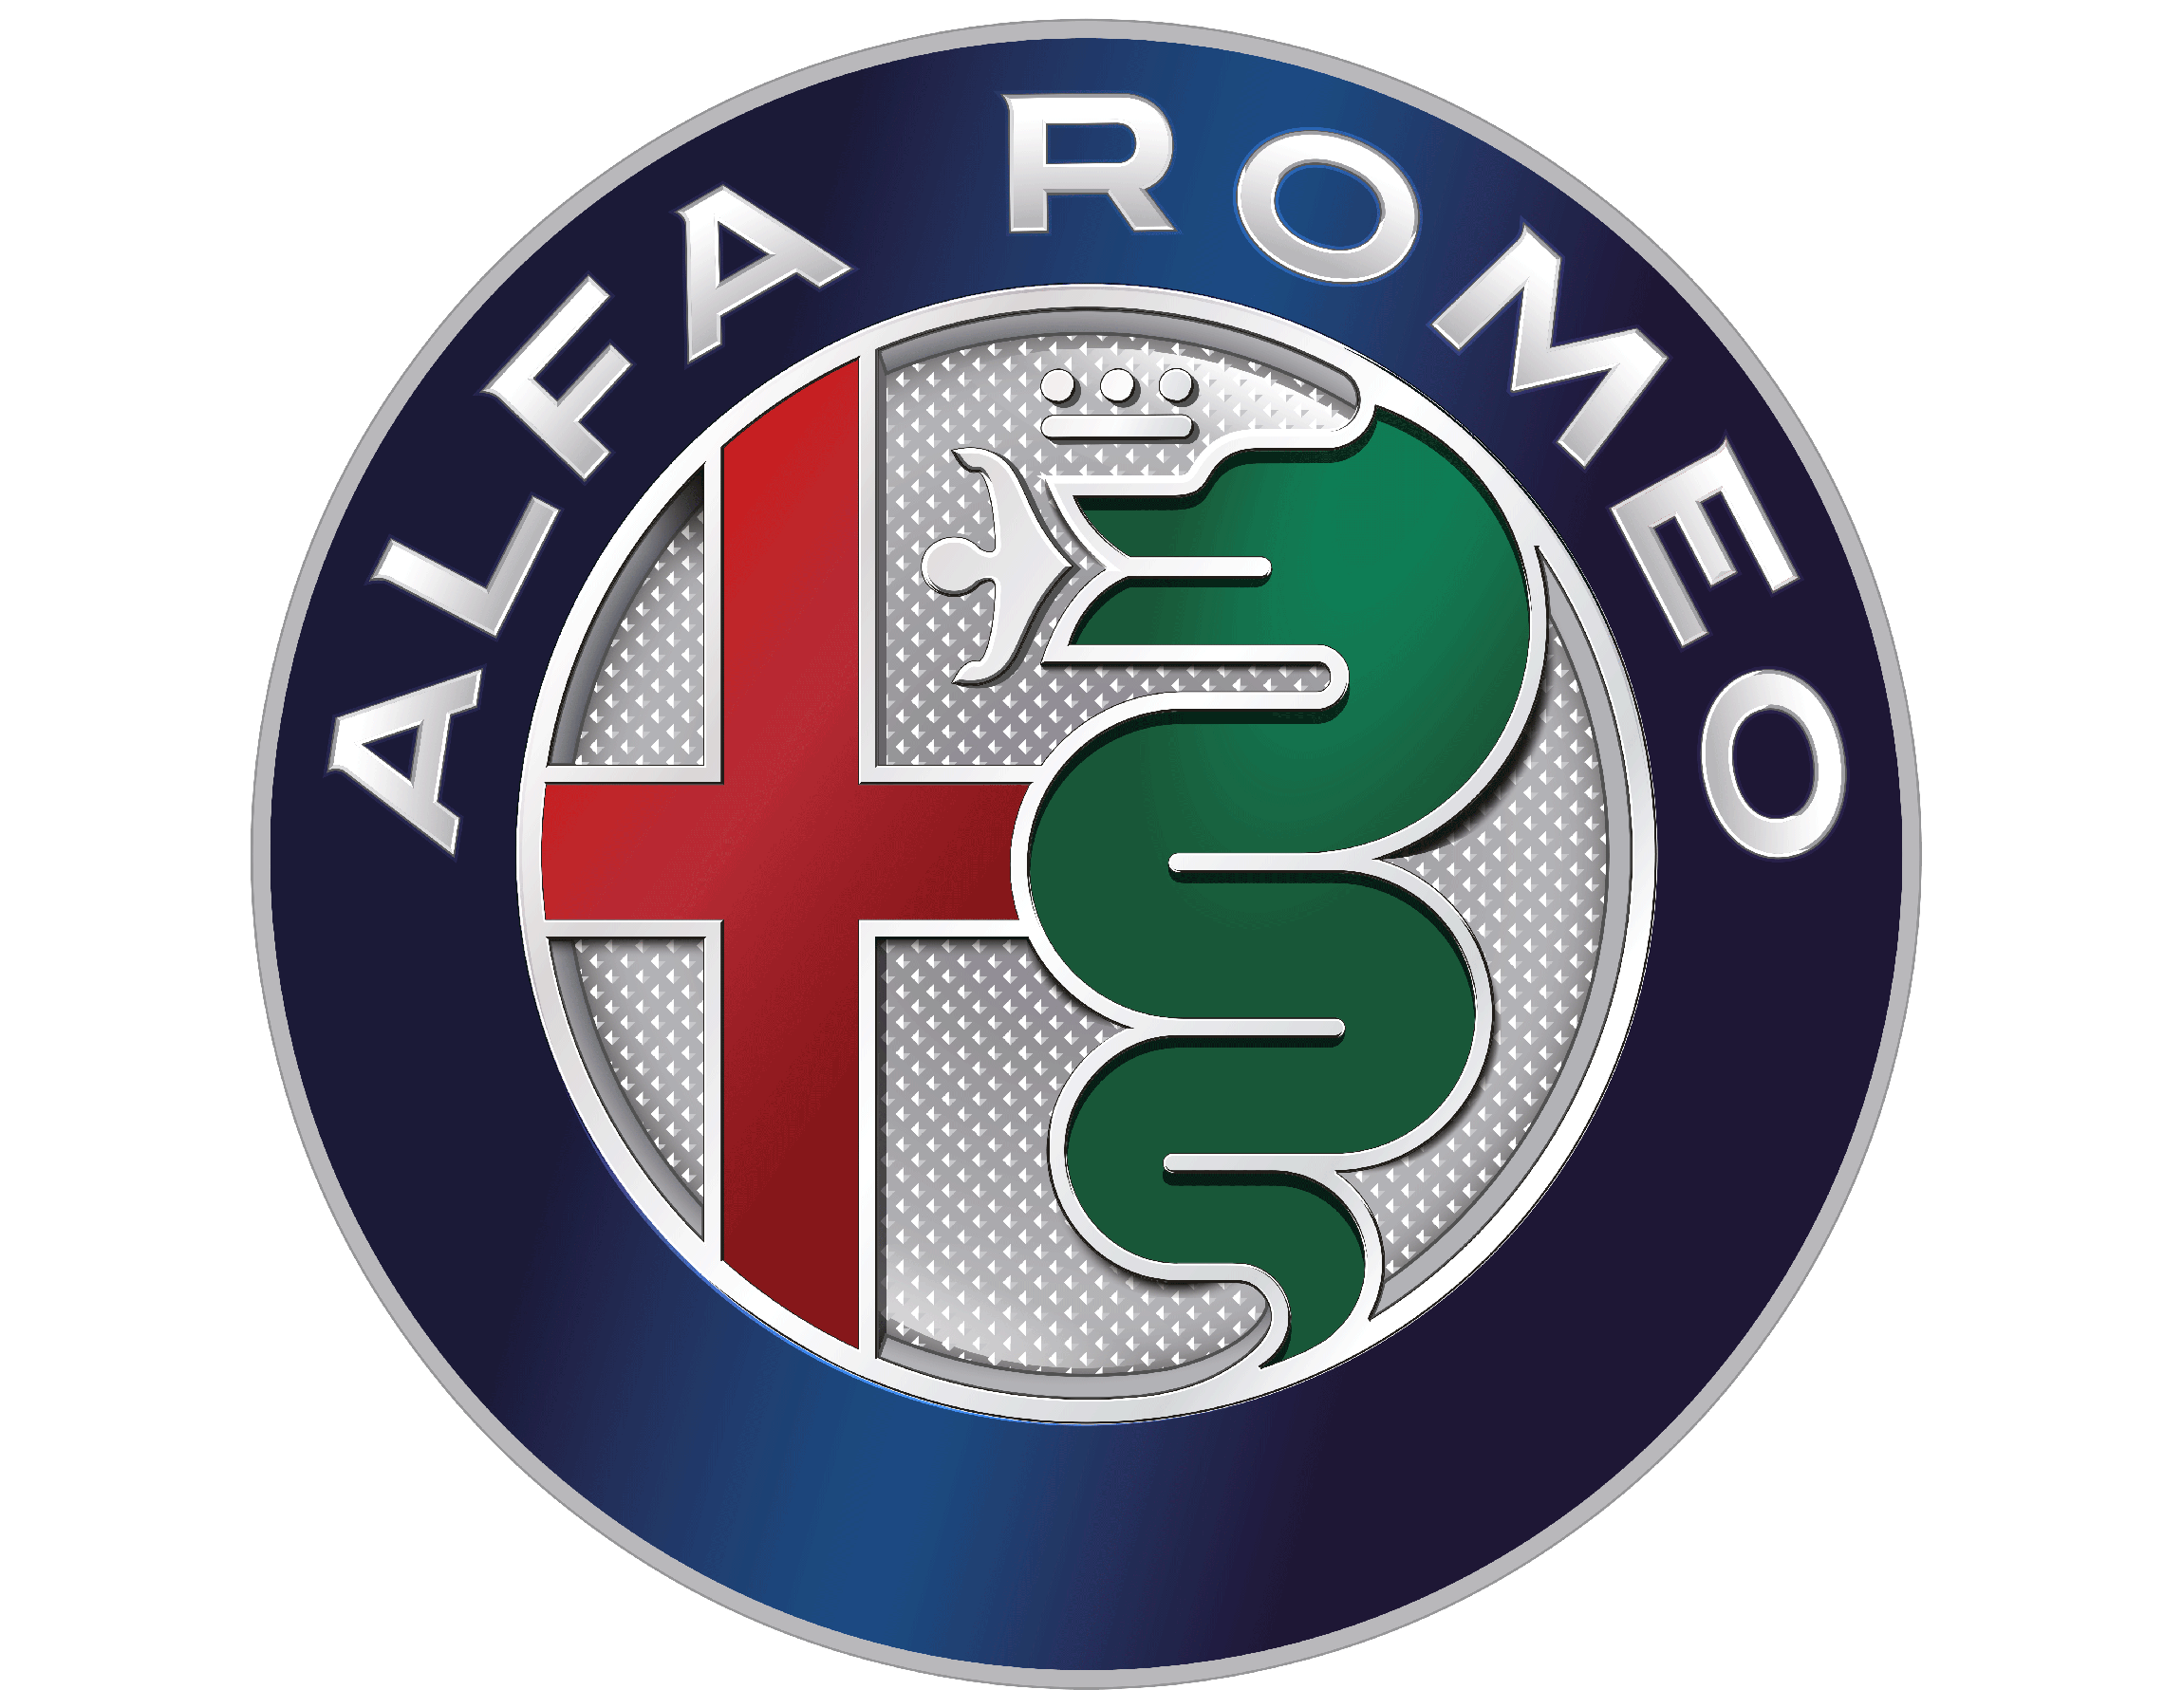 logo alfa romeo histoire image de symbole et embl me. Black Bedroom Furniture Sets. Home Design Ideas